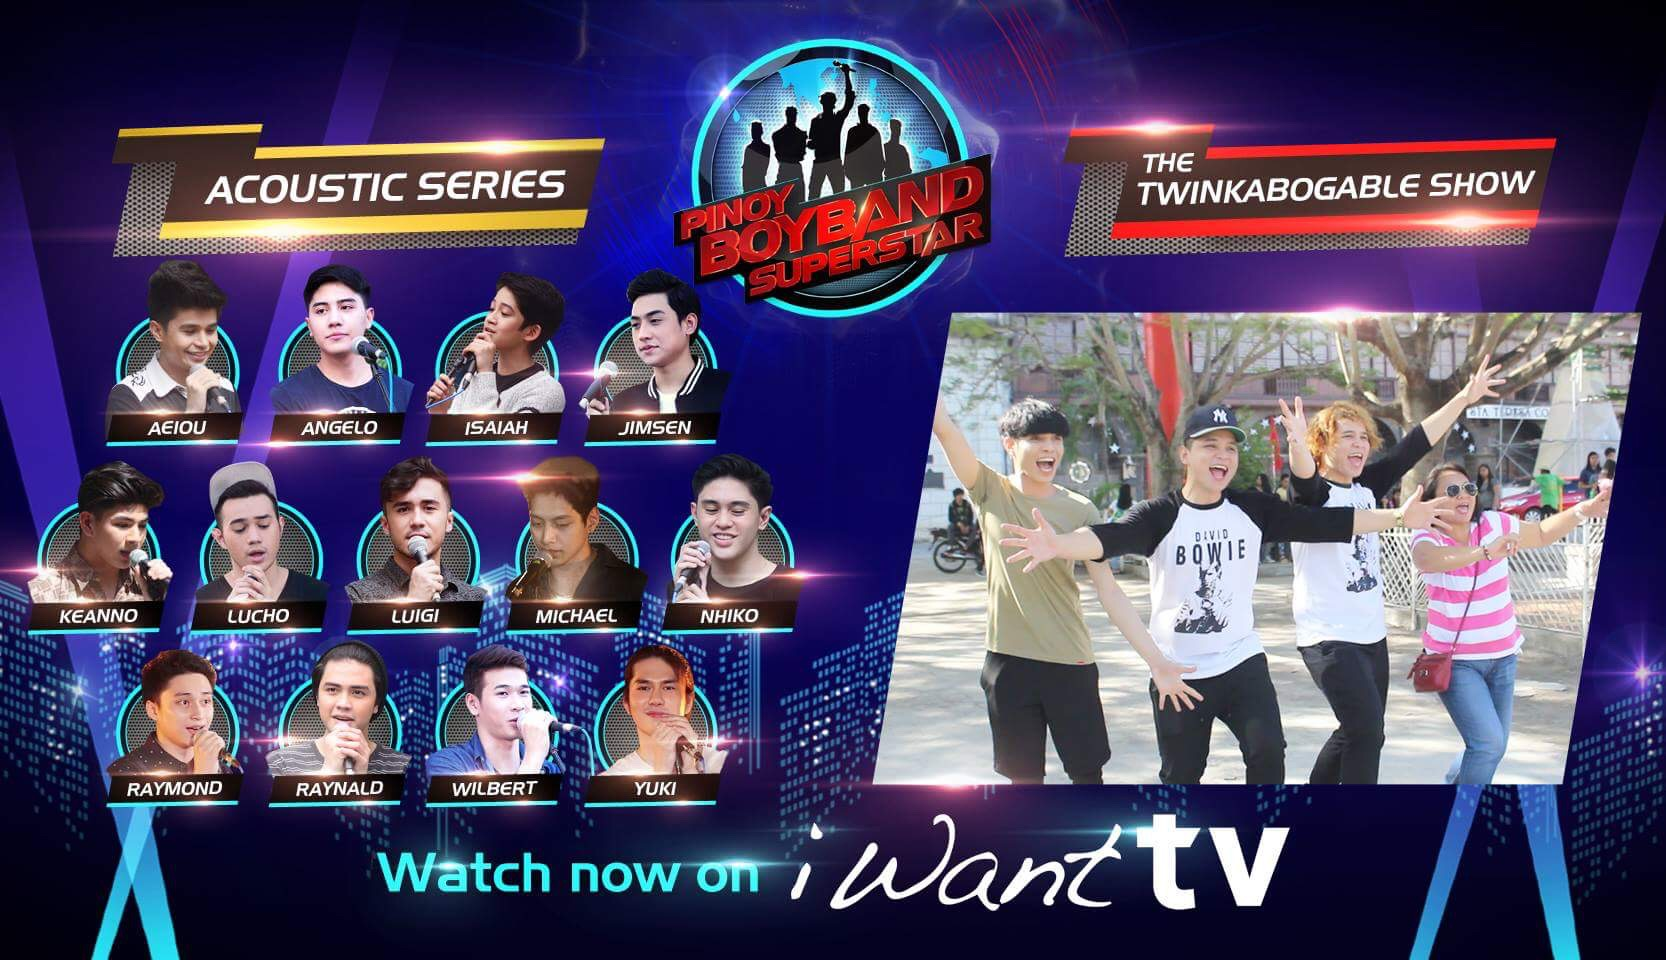 Pinoy Boyband Superstar Exclusive Videos You Need to Watch on iWanTV